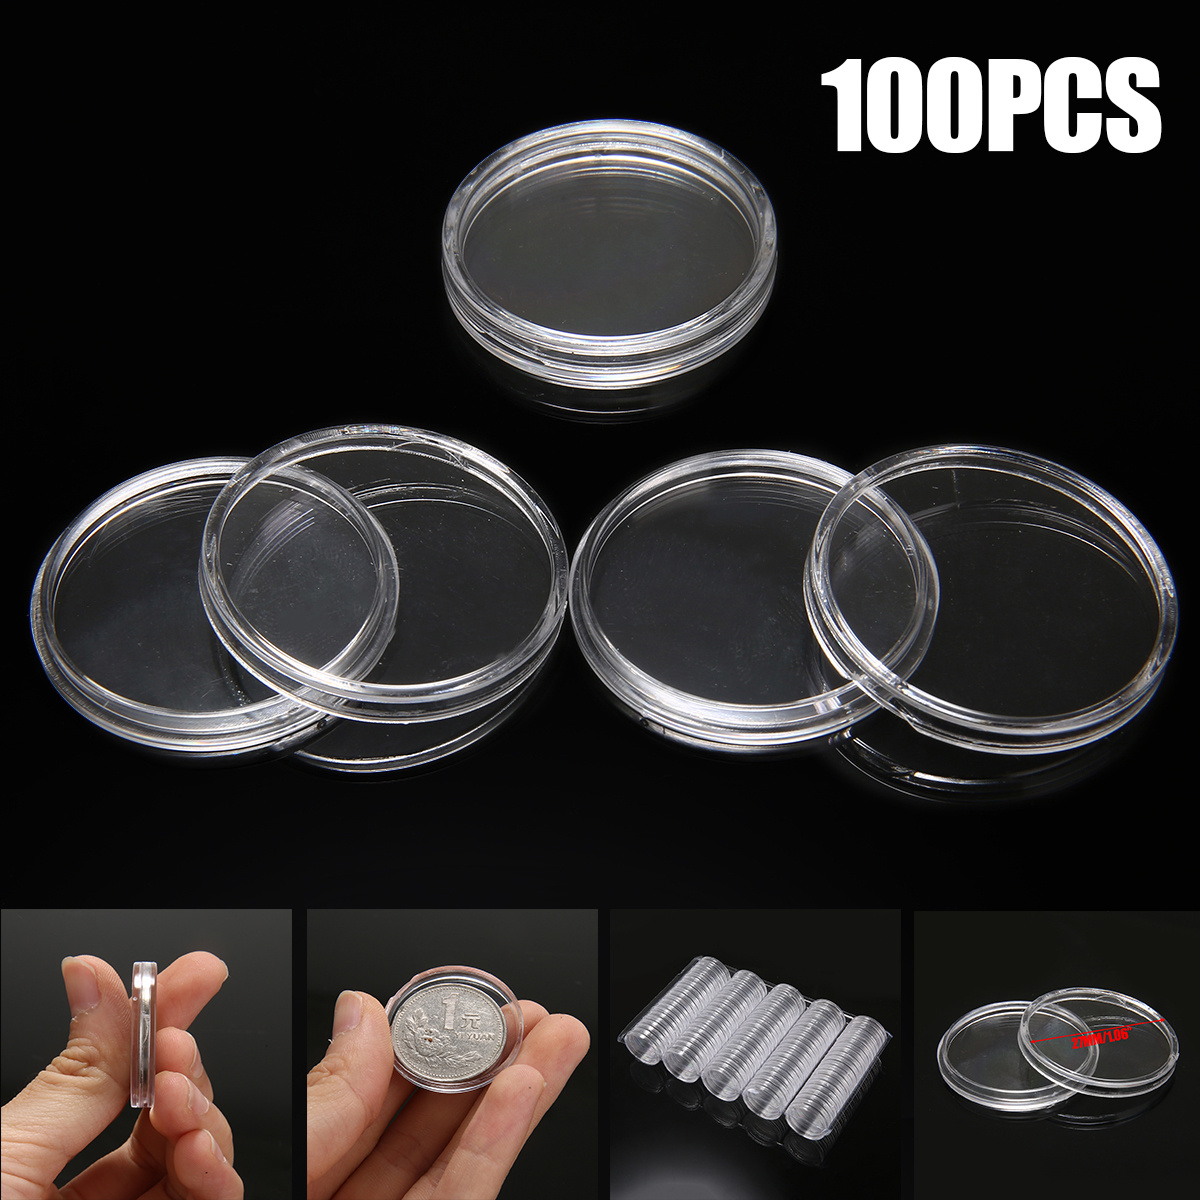 100pcs New 27mm Round Coin Capsules Coins Storage Case Box Container Plastic Clear Coin Storage Box for 2 Euro Coin